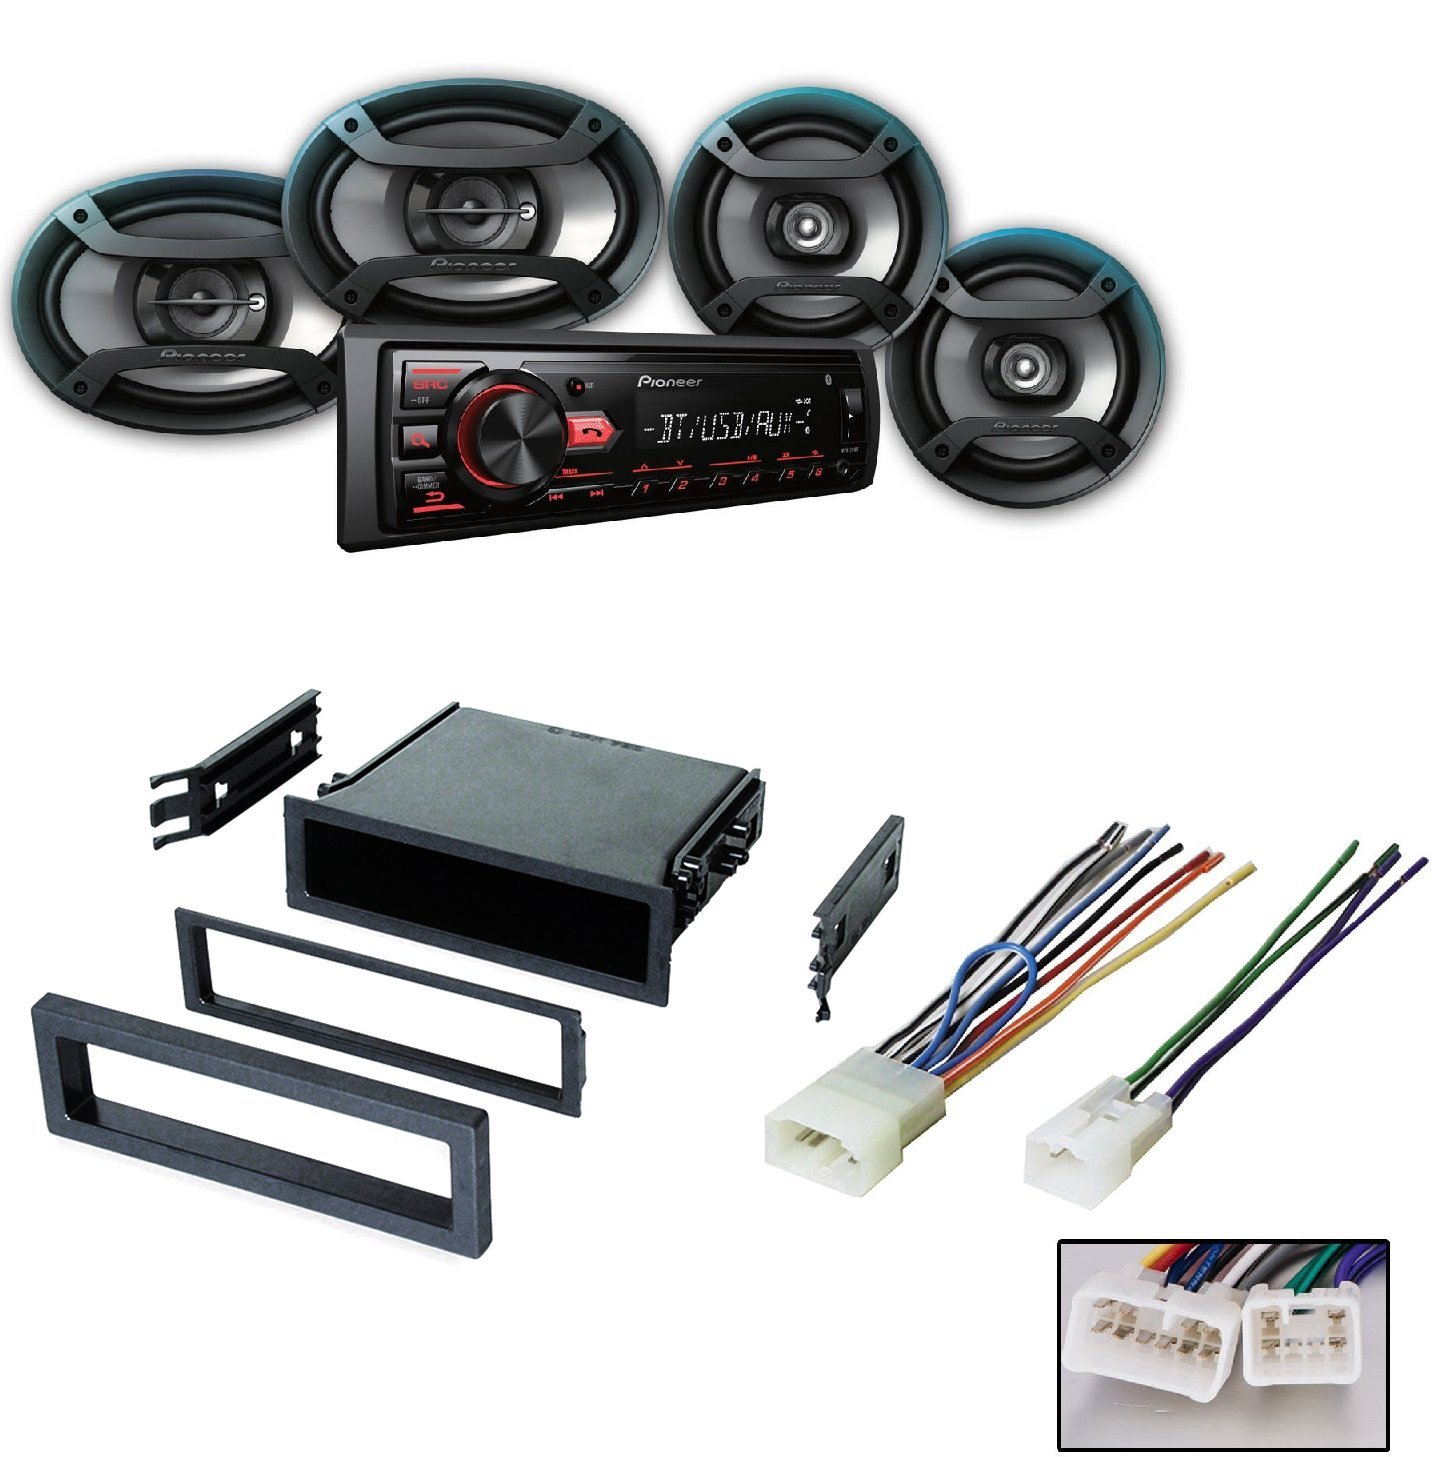 LEXUS TOYOTA SELECT MODELS CAR STEREO RADIO CD PLAYER RECEIVER INSTALL MOUNTING KIT WIRE HARNESS W/ Pioneer DXT-X4969BT CD Player Bluetooth Receiver + 6.5'' & 6''x9'' Speakers Package